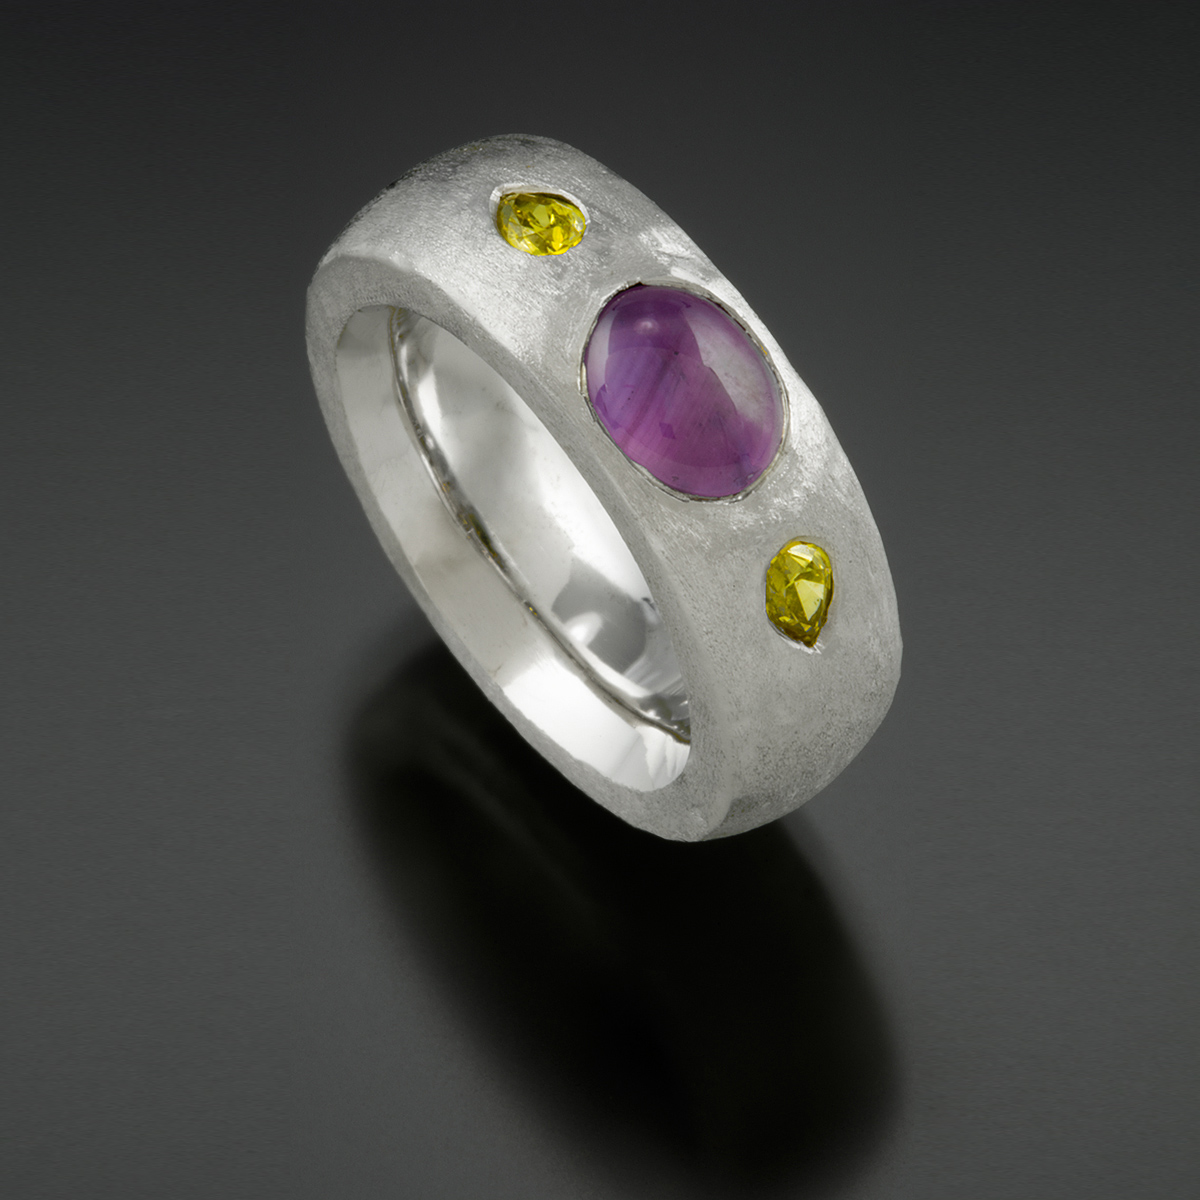 18K white gold ring with purple star Sapphire and yellow Diamonds